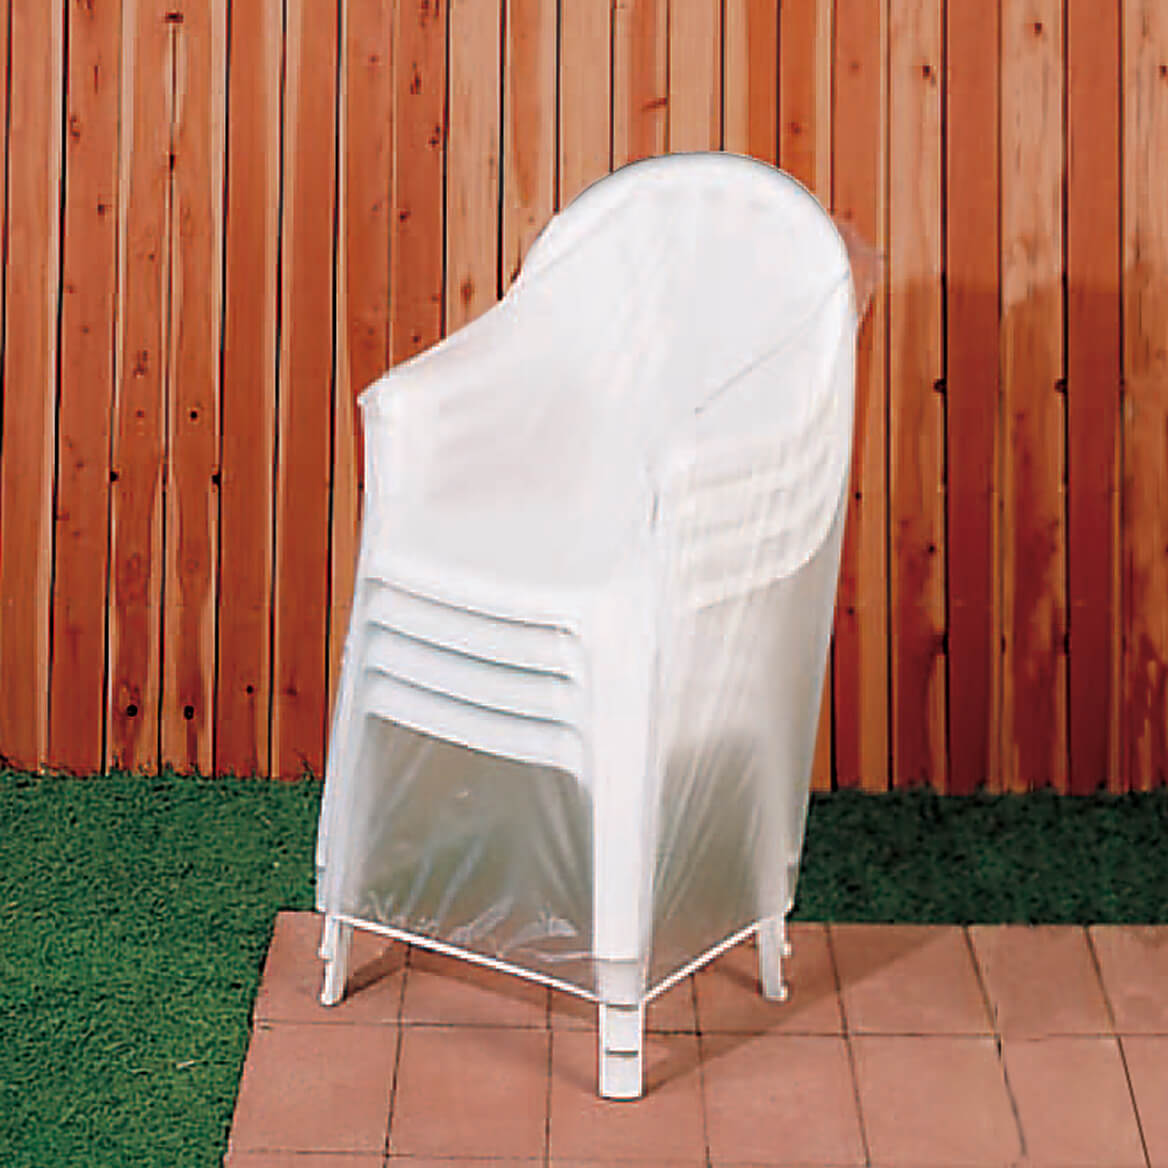 Plastic Chair Covers Vinyl Outdoor Chair Cover Outdoor Patio Chair Covers